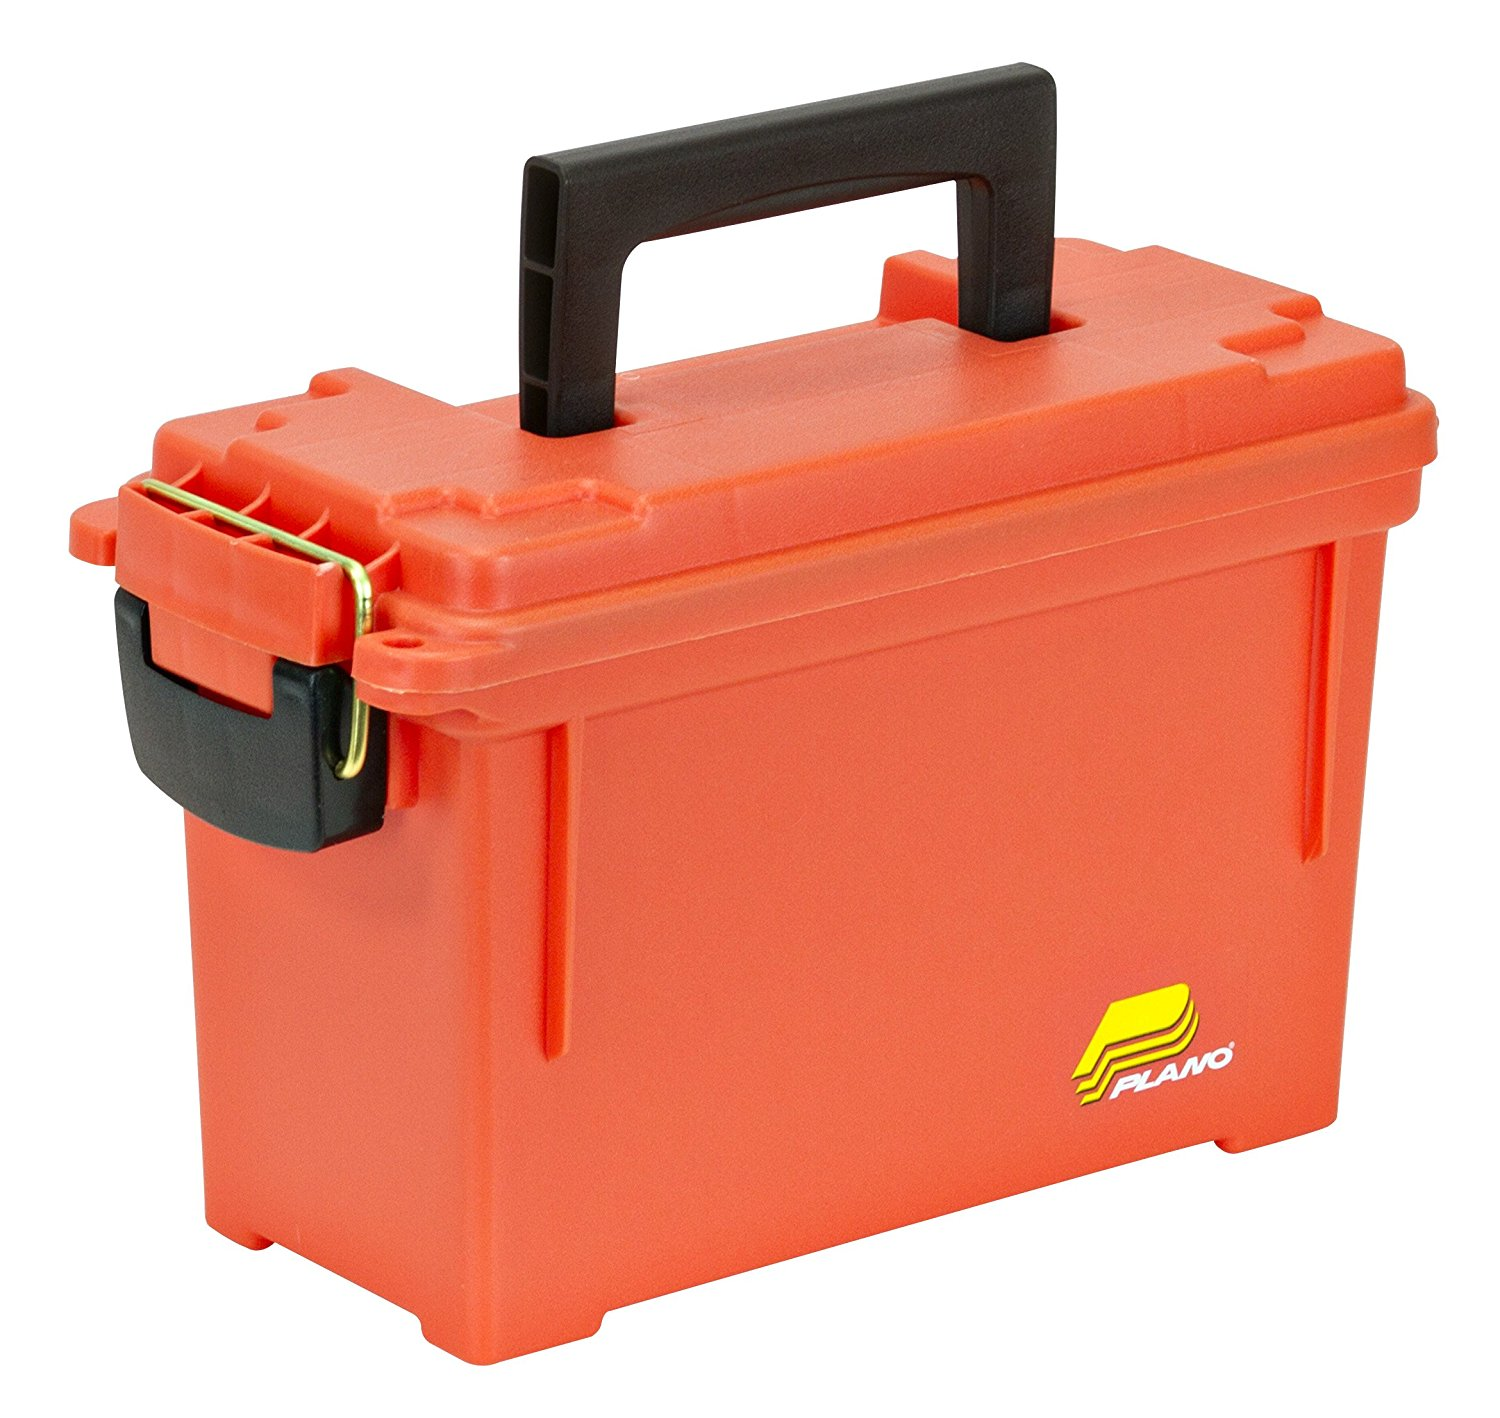 Plano Brass-Bailed Latch, Orange Dry Storage Emergency Marine Box